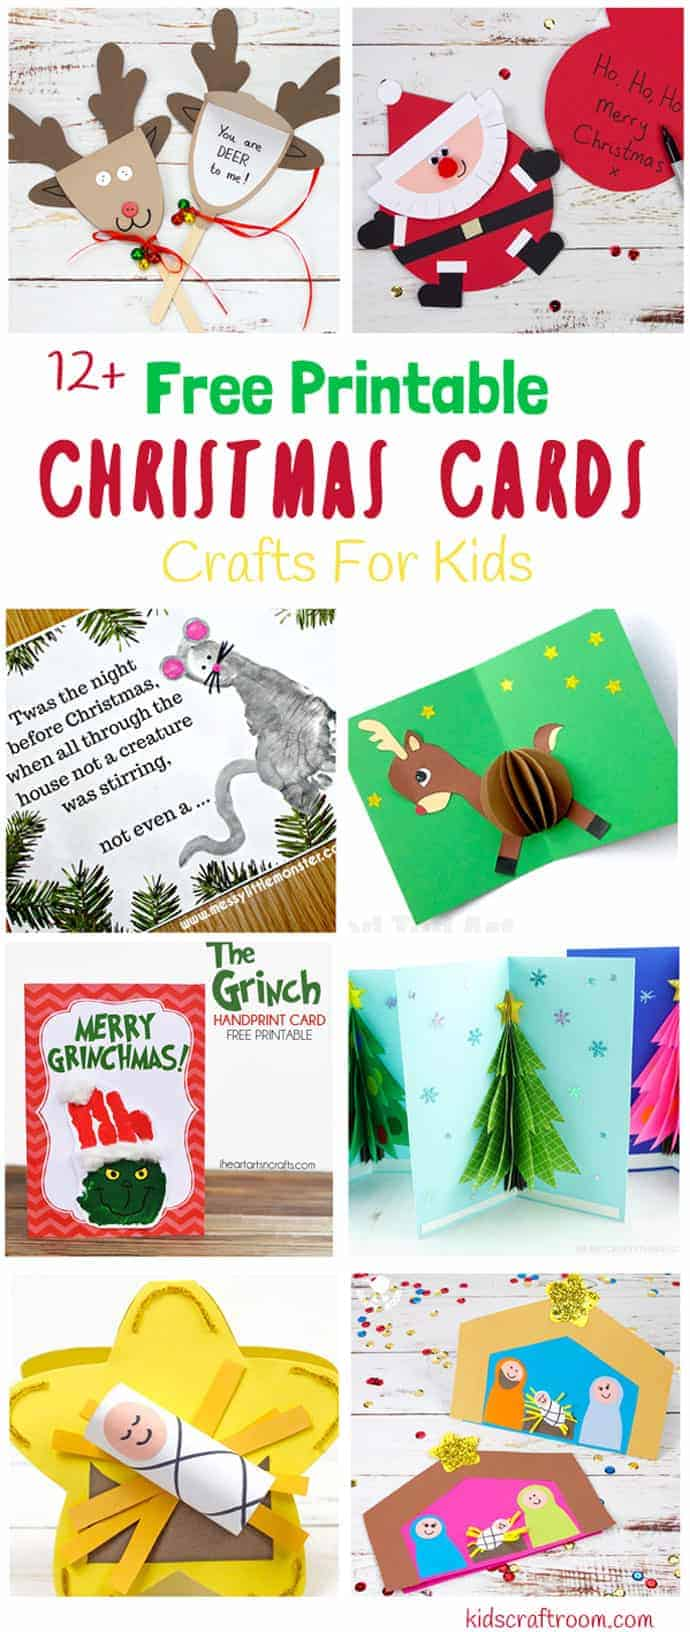 Would you love to send homemade Christmas cards this year? We've made it super easy with this gorgeous collection of FREE PRINTABLE CHRISTMAS CARDS. Grab your downloads are enjoy some fun Christmas card crafts today! #christmas #christmascards #christmascrafts #kidscrafts #greetingcards #printables #cards #preschool #kidscraftroom